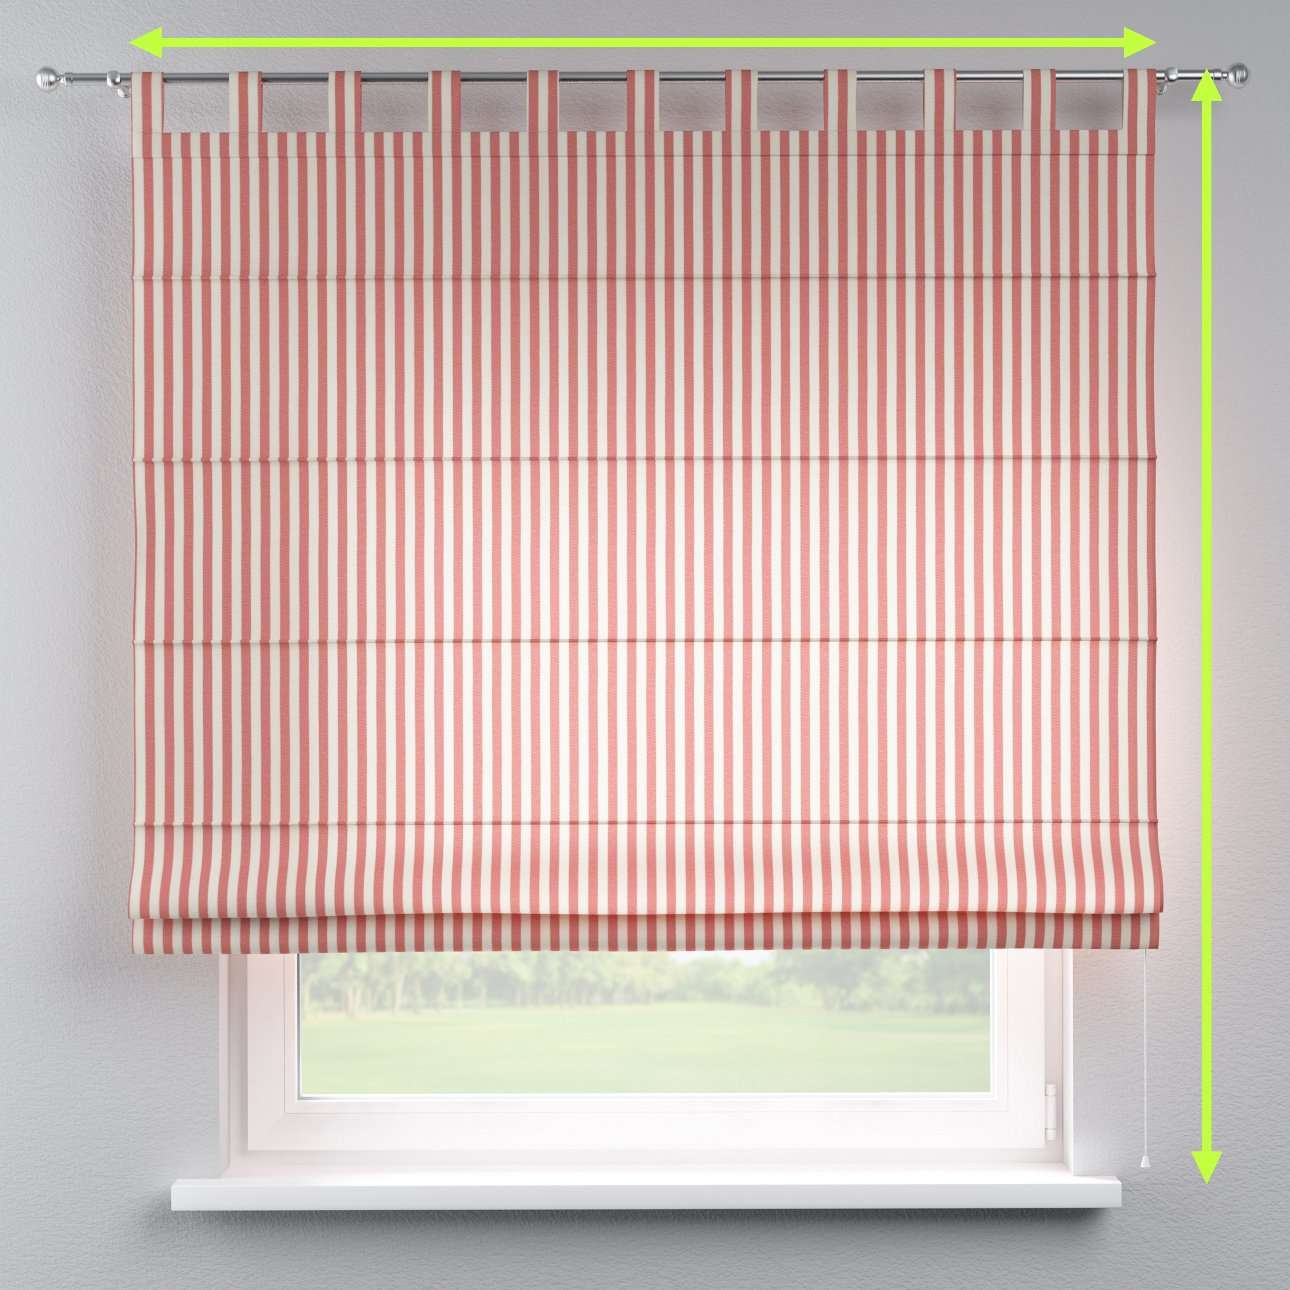 Verona tab top roman blind in collection Quadro, fabric: 136-17